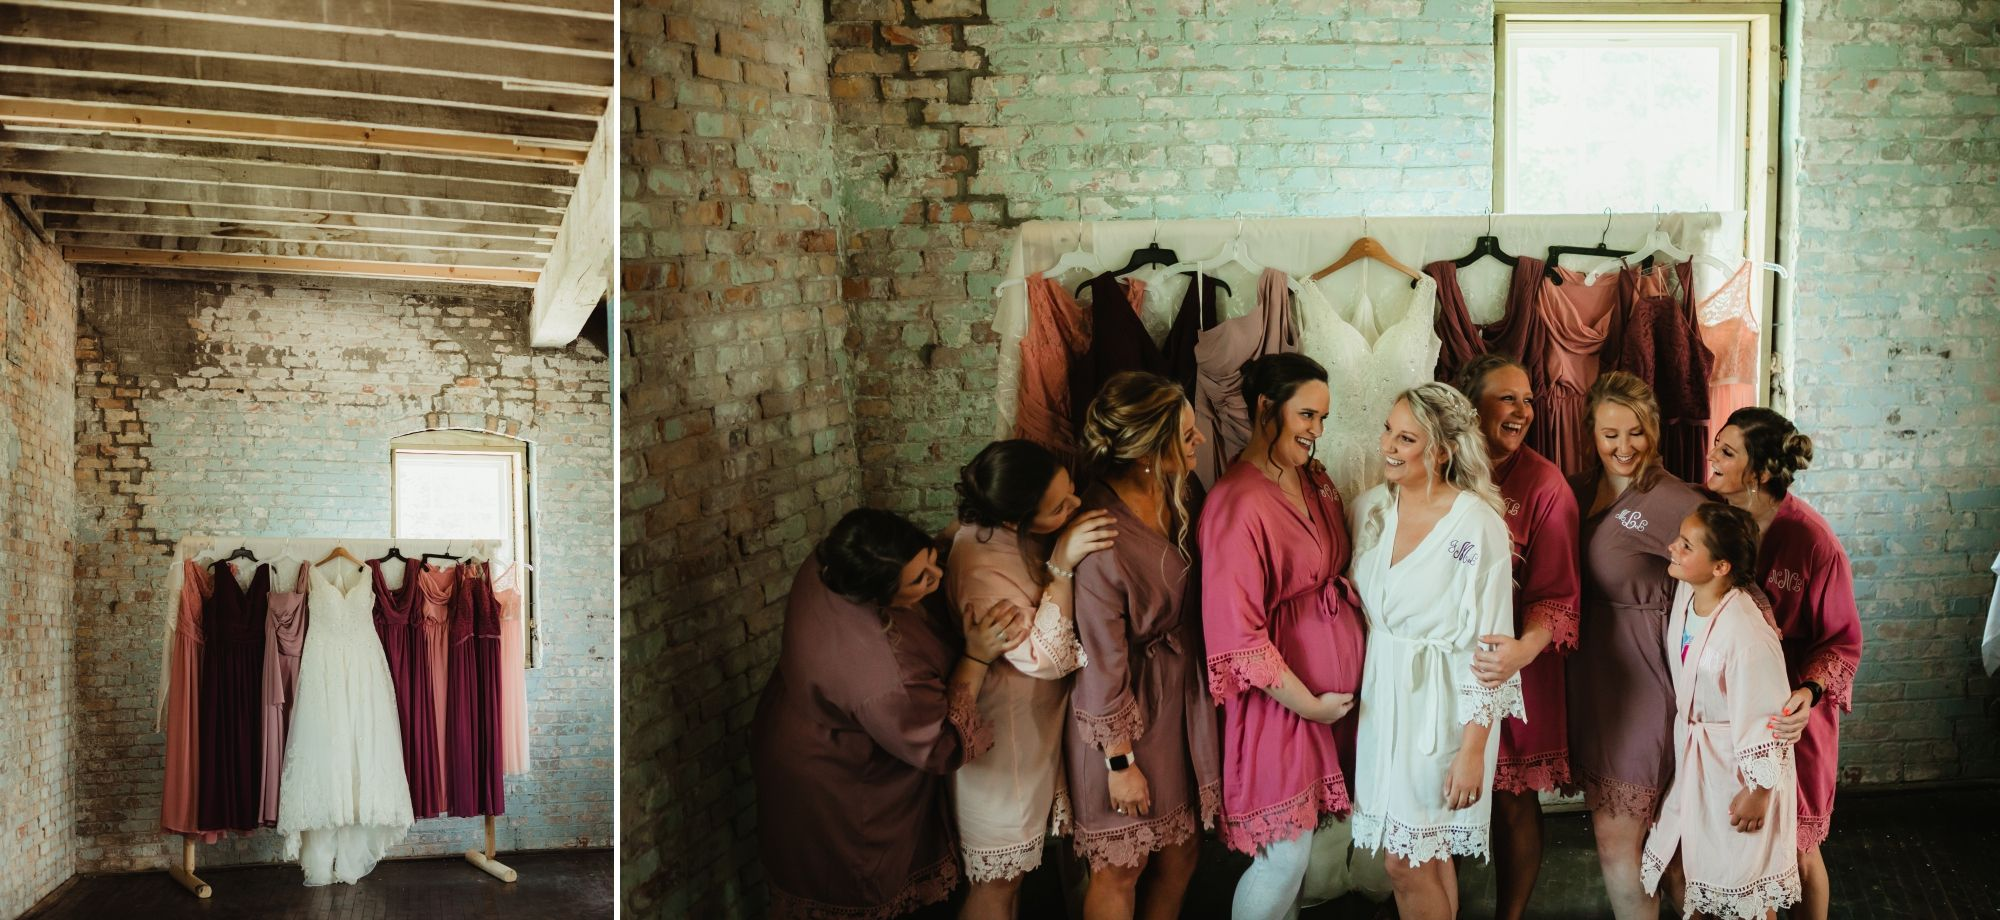 Bridesmaids smiling at each other and standing in front of the hanging dresses.